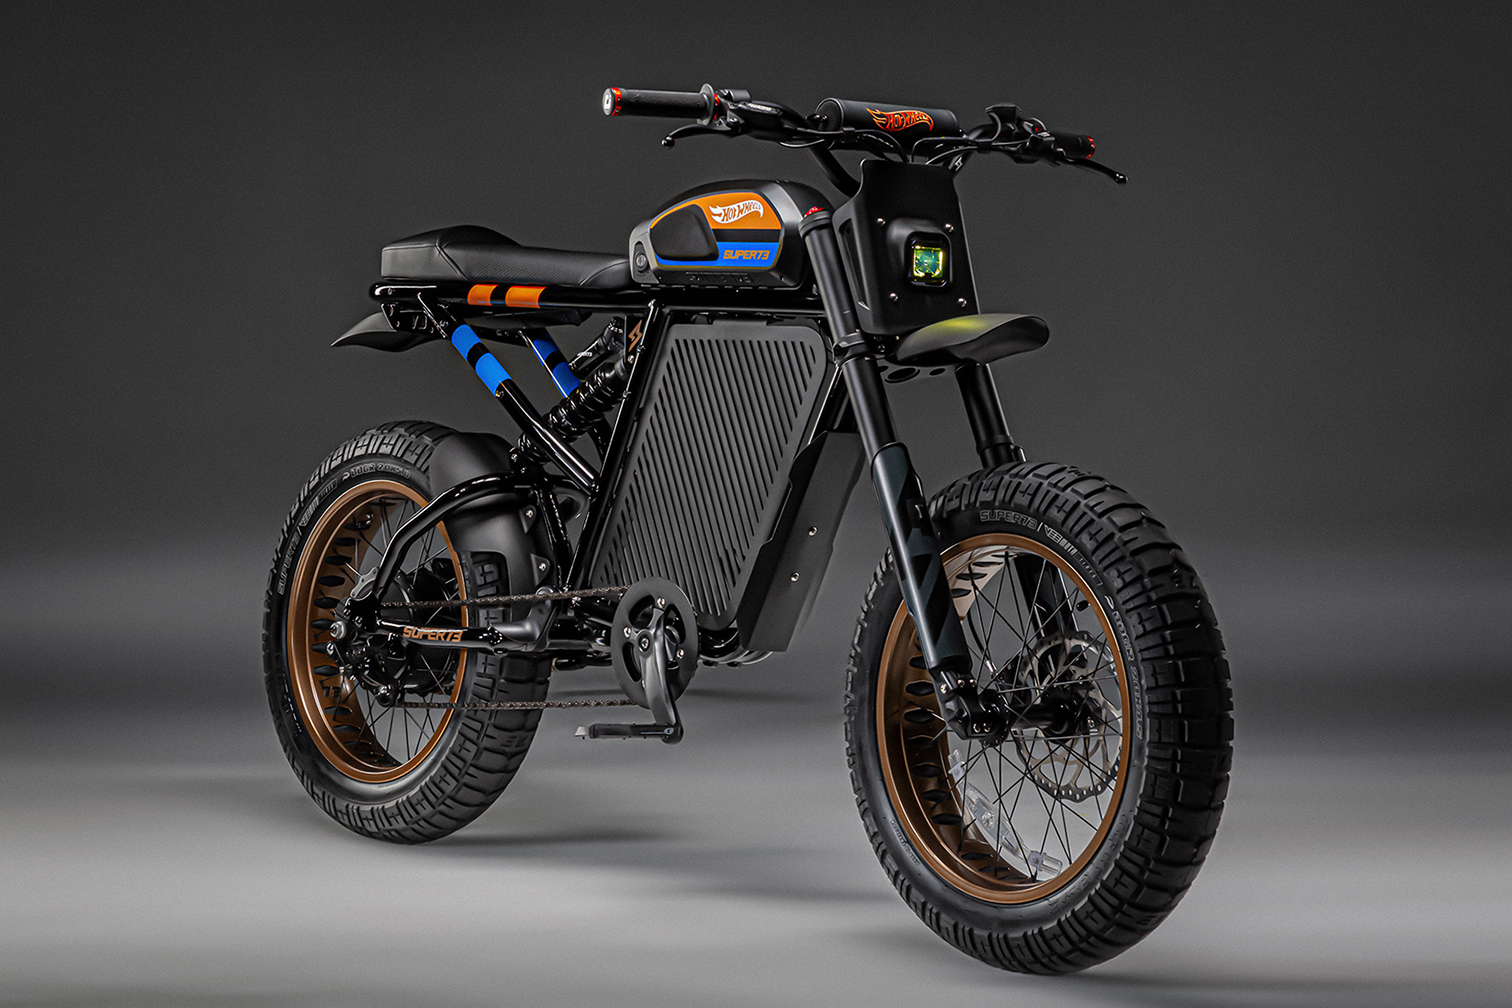 Extremely limited edition Hot Wheels x SUPER73-RX e-bike only available from www.super73.com